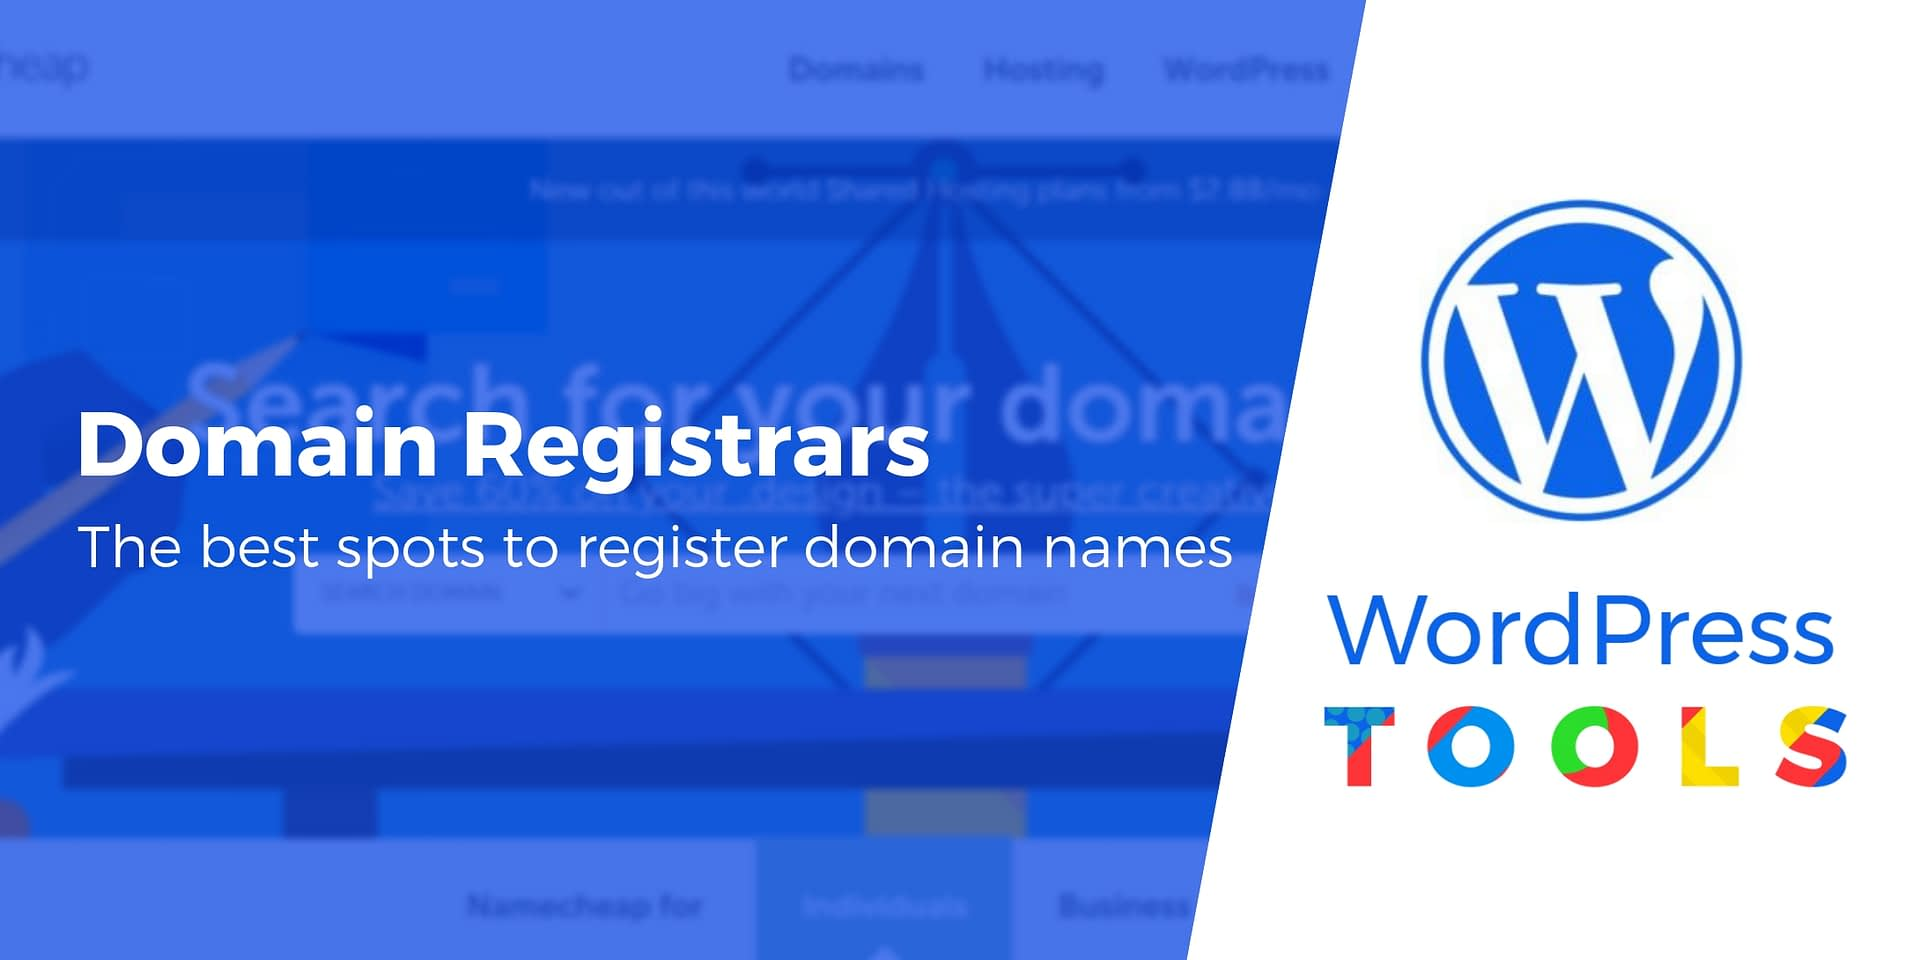 7 Best Domain Registrars: Who's the Cheapest & Should You Use Them?